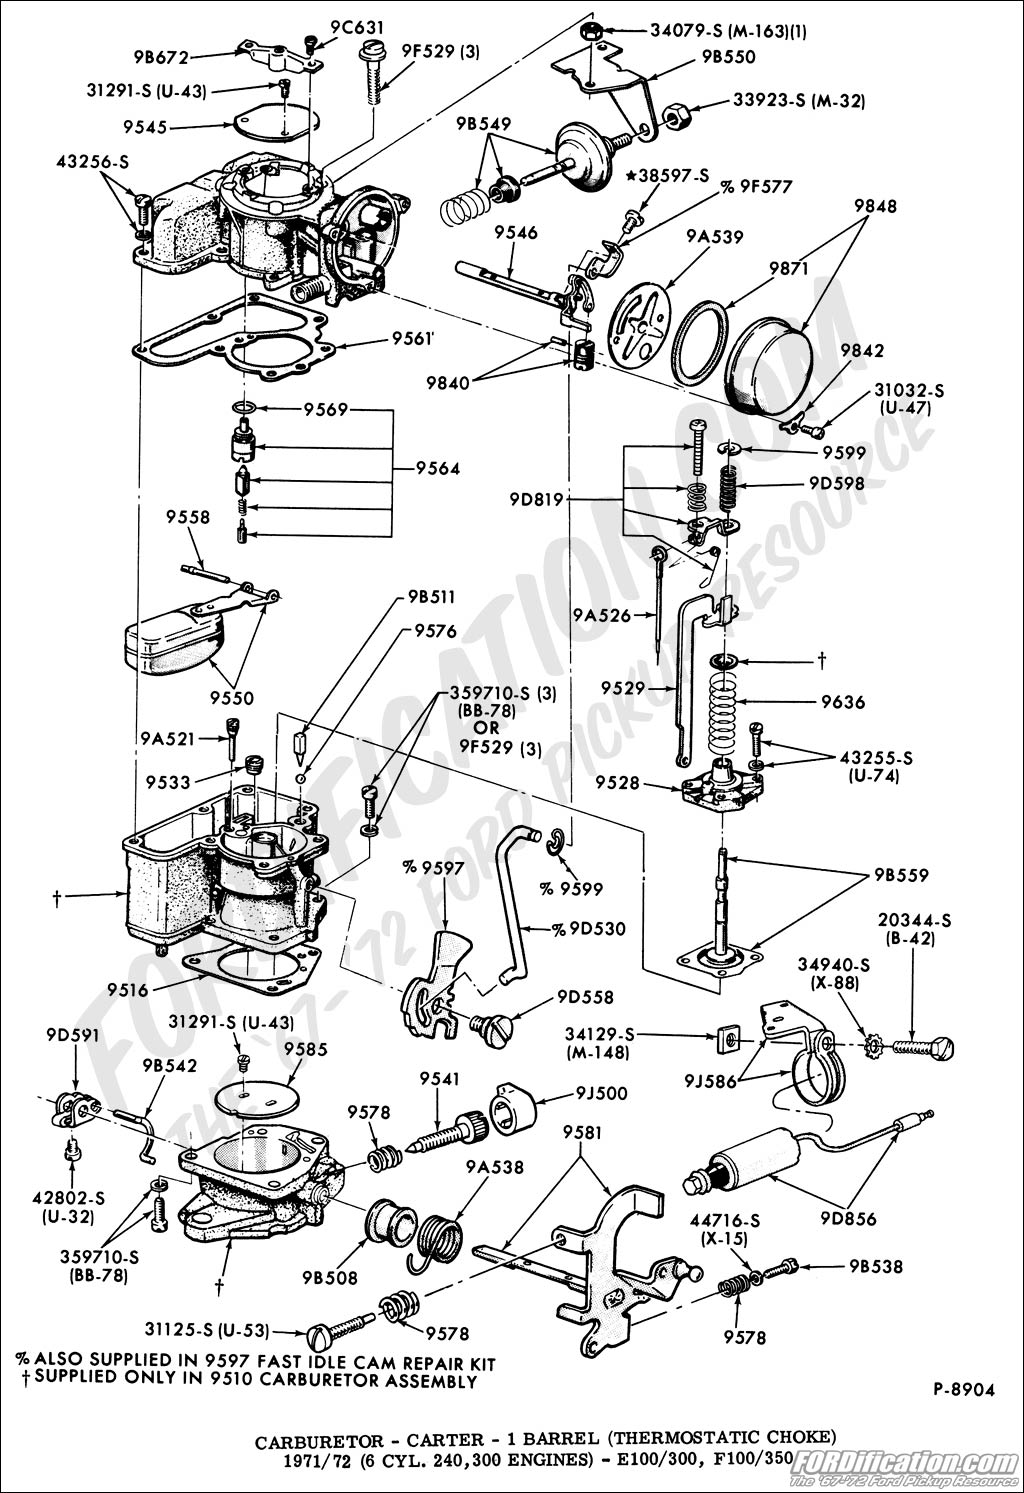 1965 Ford Mustang Power Steering Diagram as well 1972 Blazer Wiper Wiring Diagram also 1998 Lexus LS400 Starter likewise 67 Mustang Door Diagram as well 2003 F 150 Steering Column Harness. on 1964 ford galaxie steering diagram